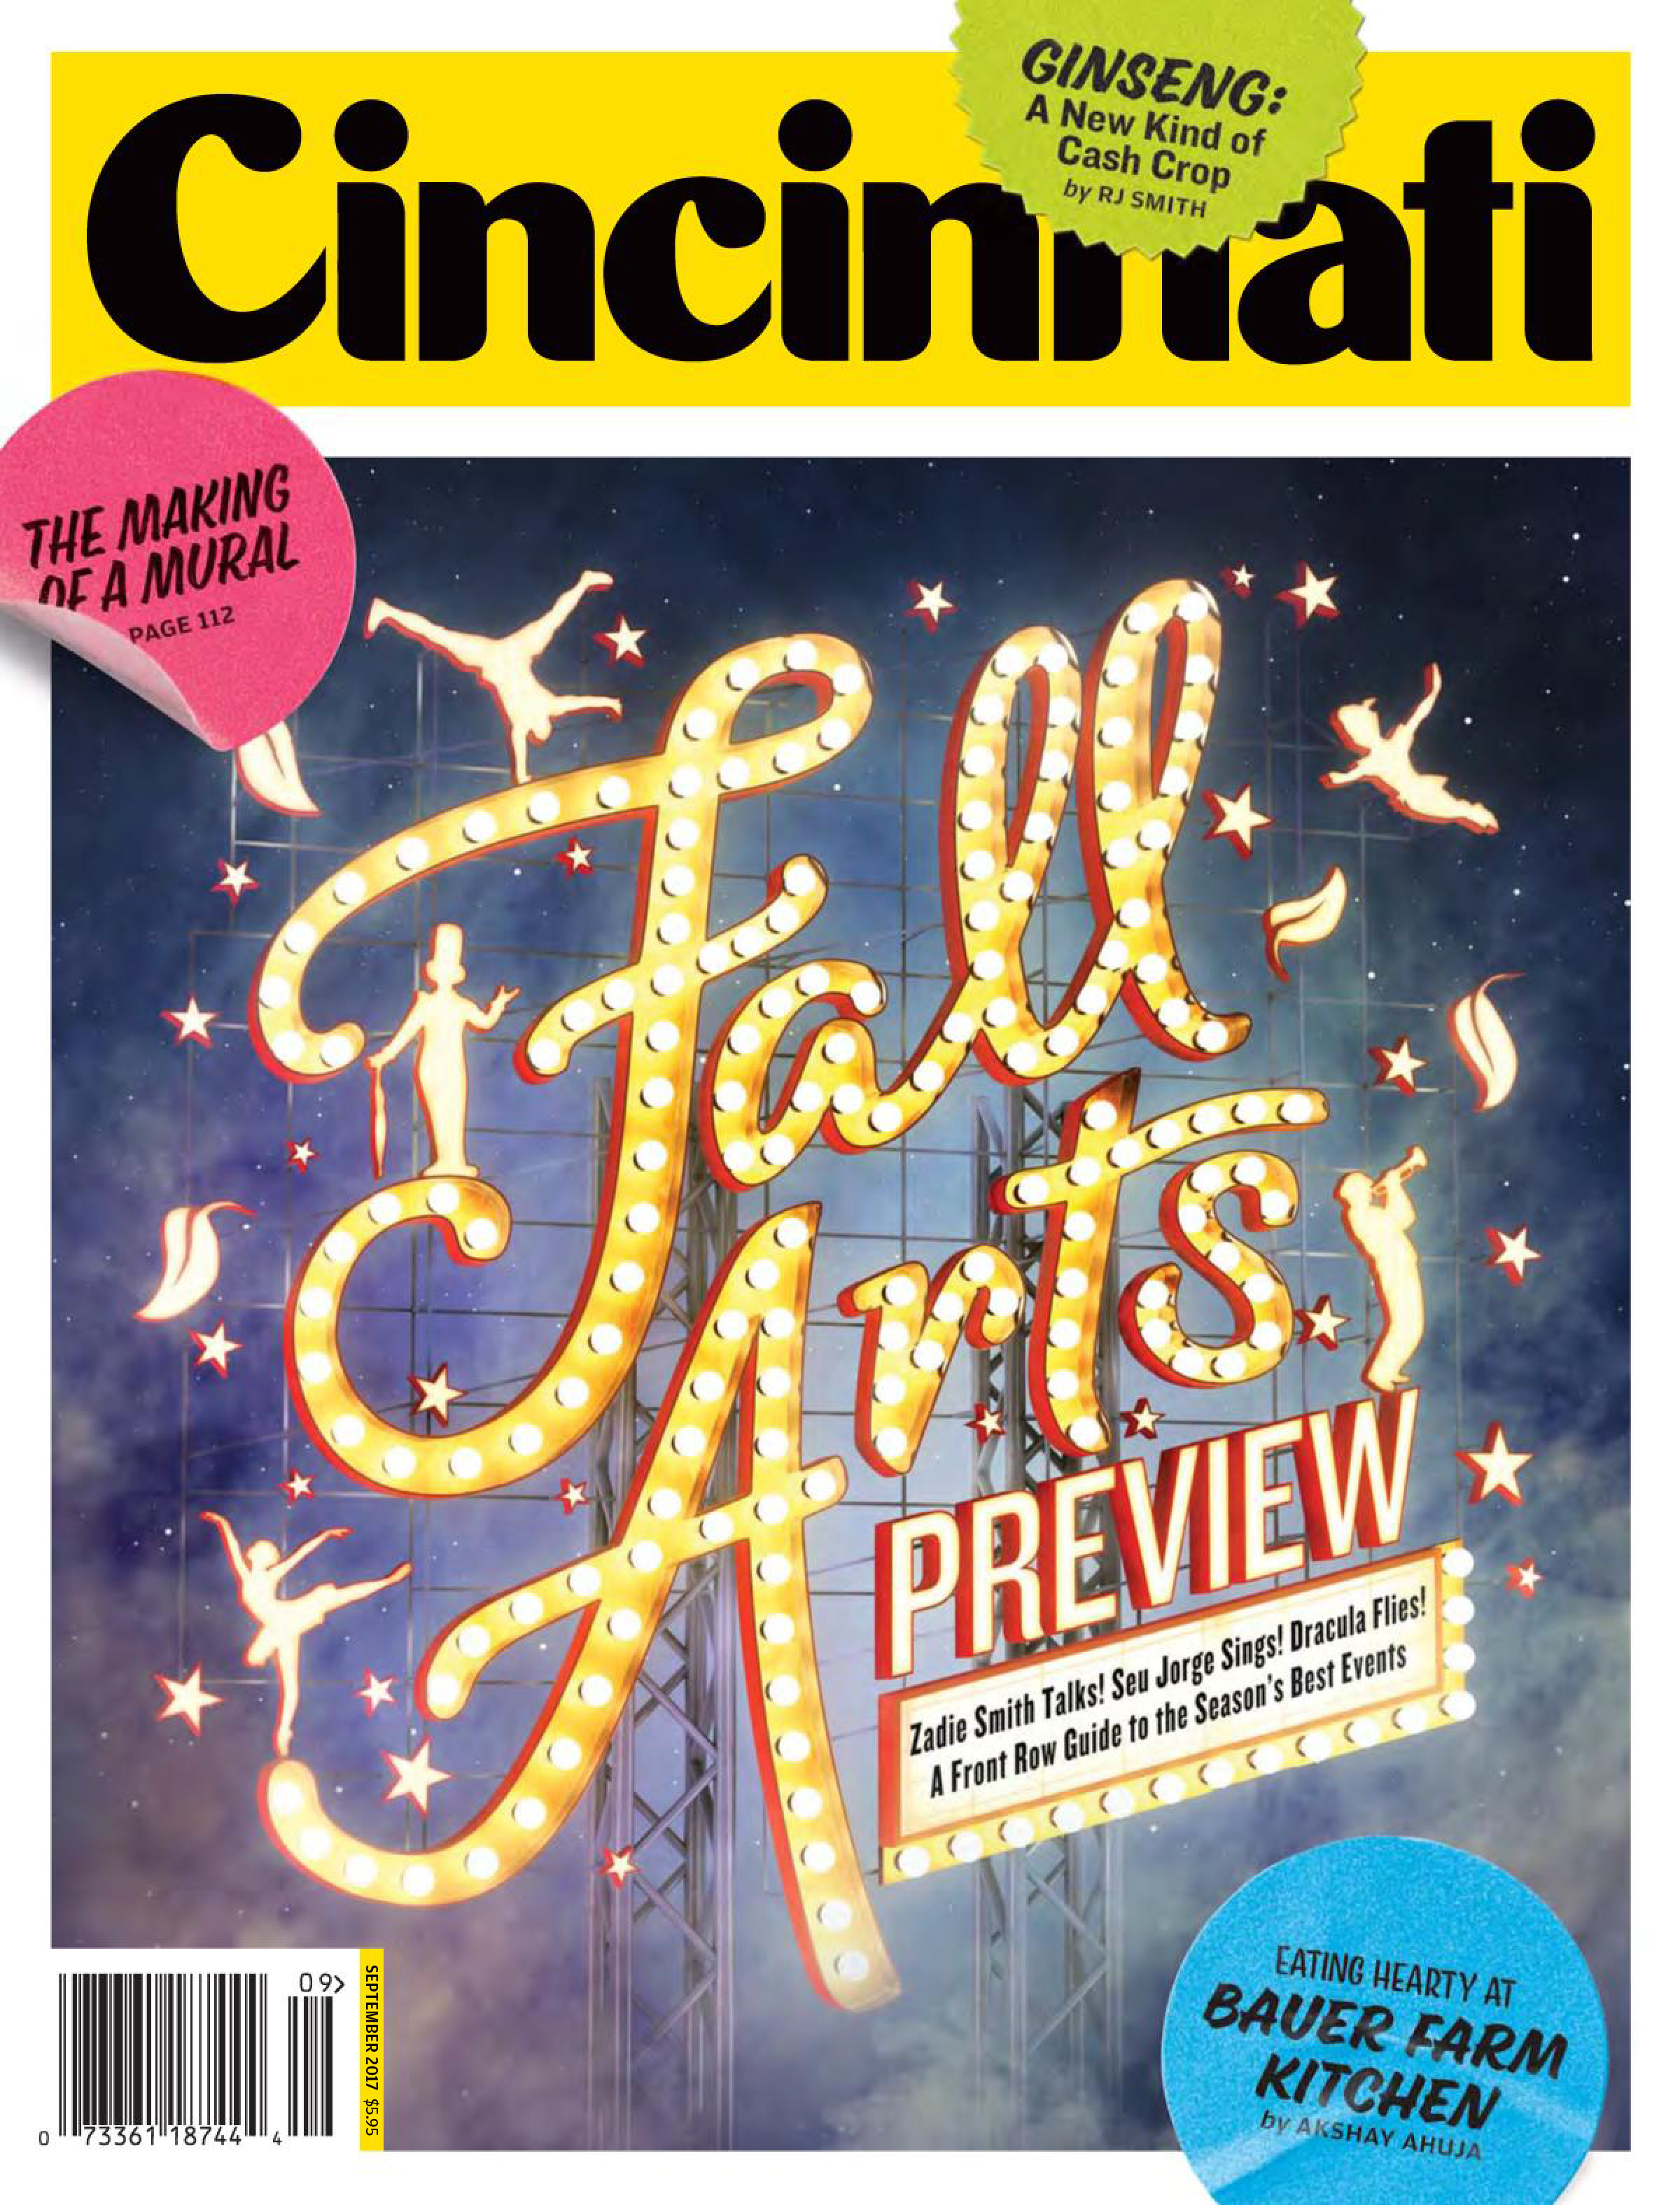 Cincinnati_Magazine__September_2017-1.jpg